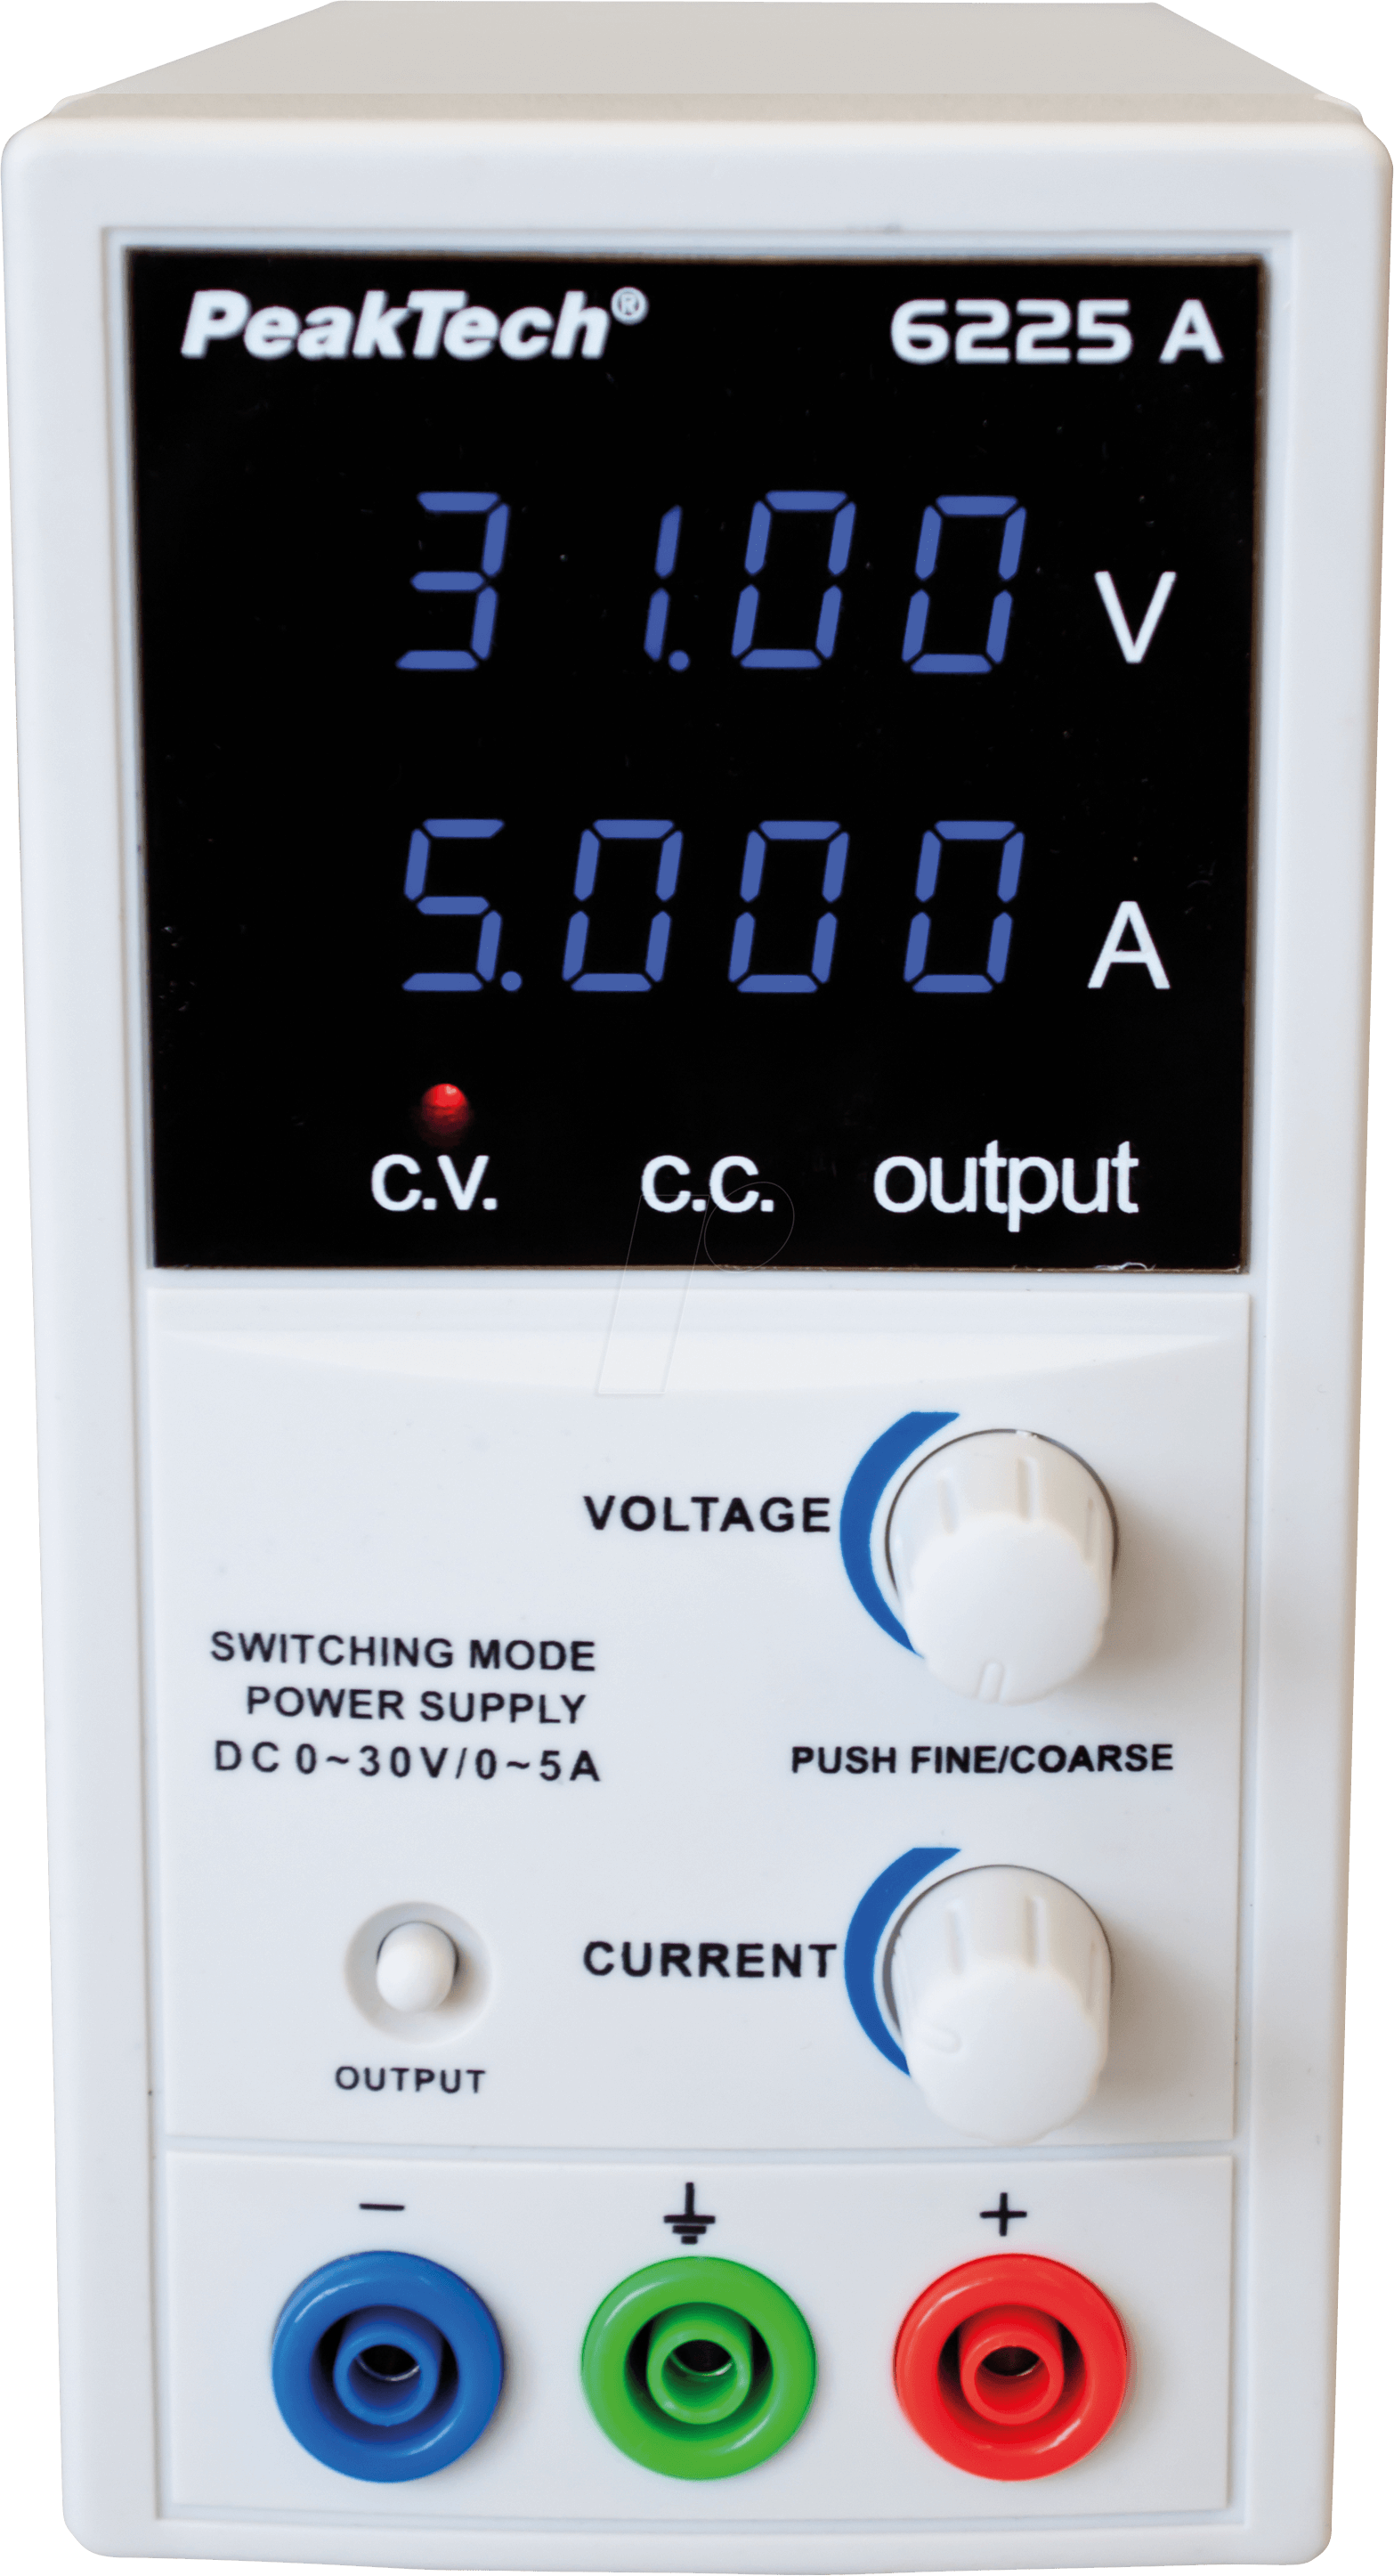 PEAKTECH 6225 A: Laboratory Switching Mode Power Supply